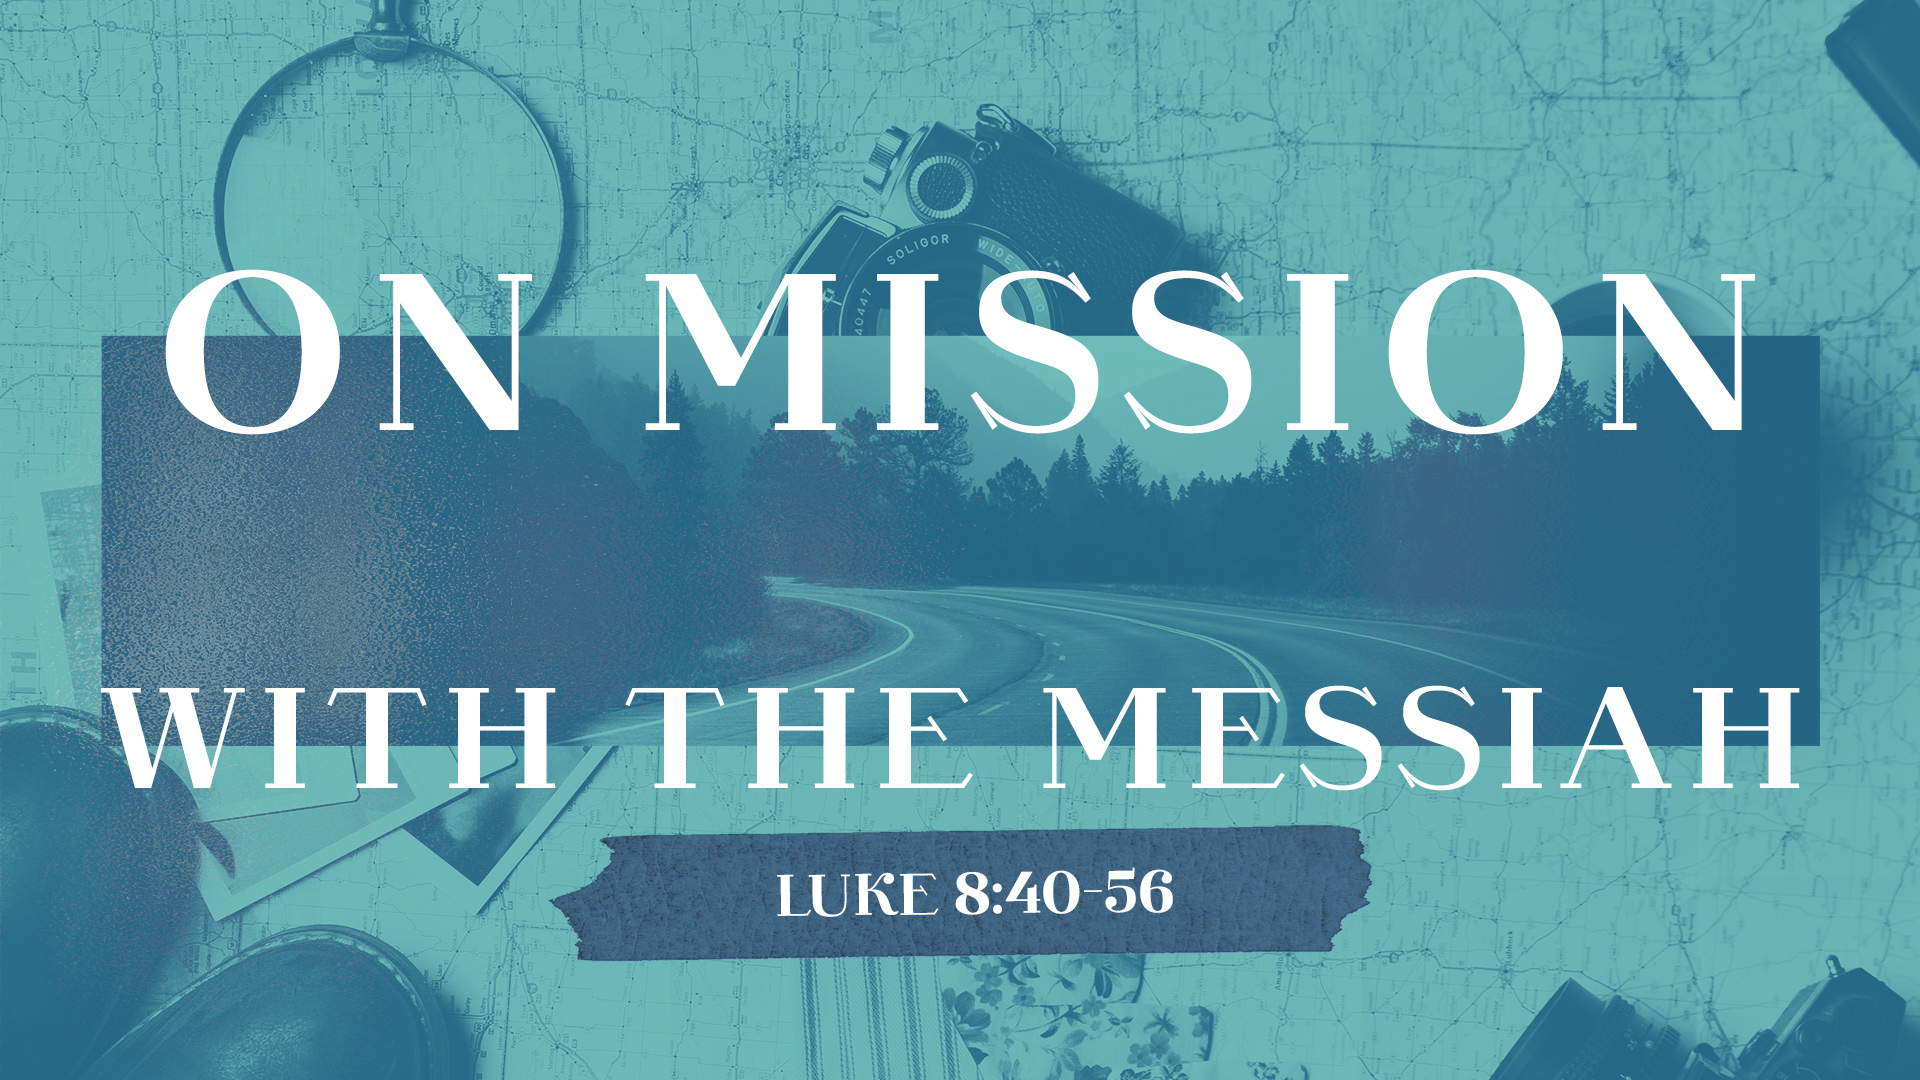 On Mission with the Messiah